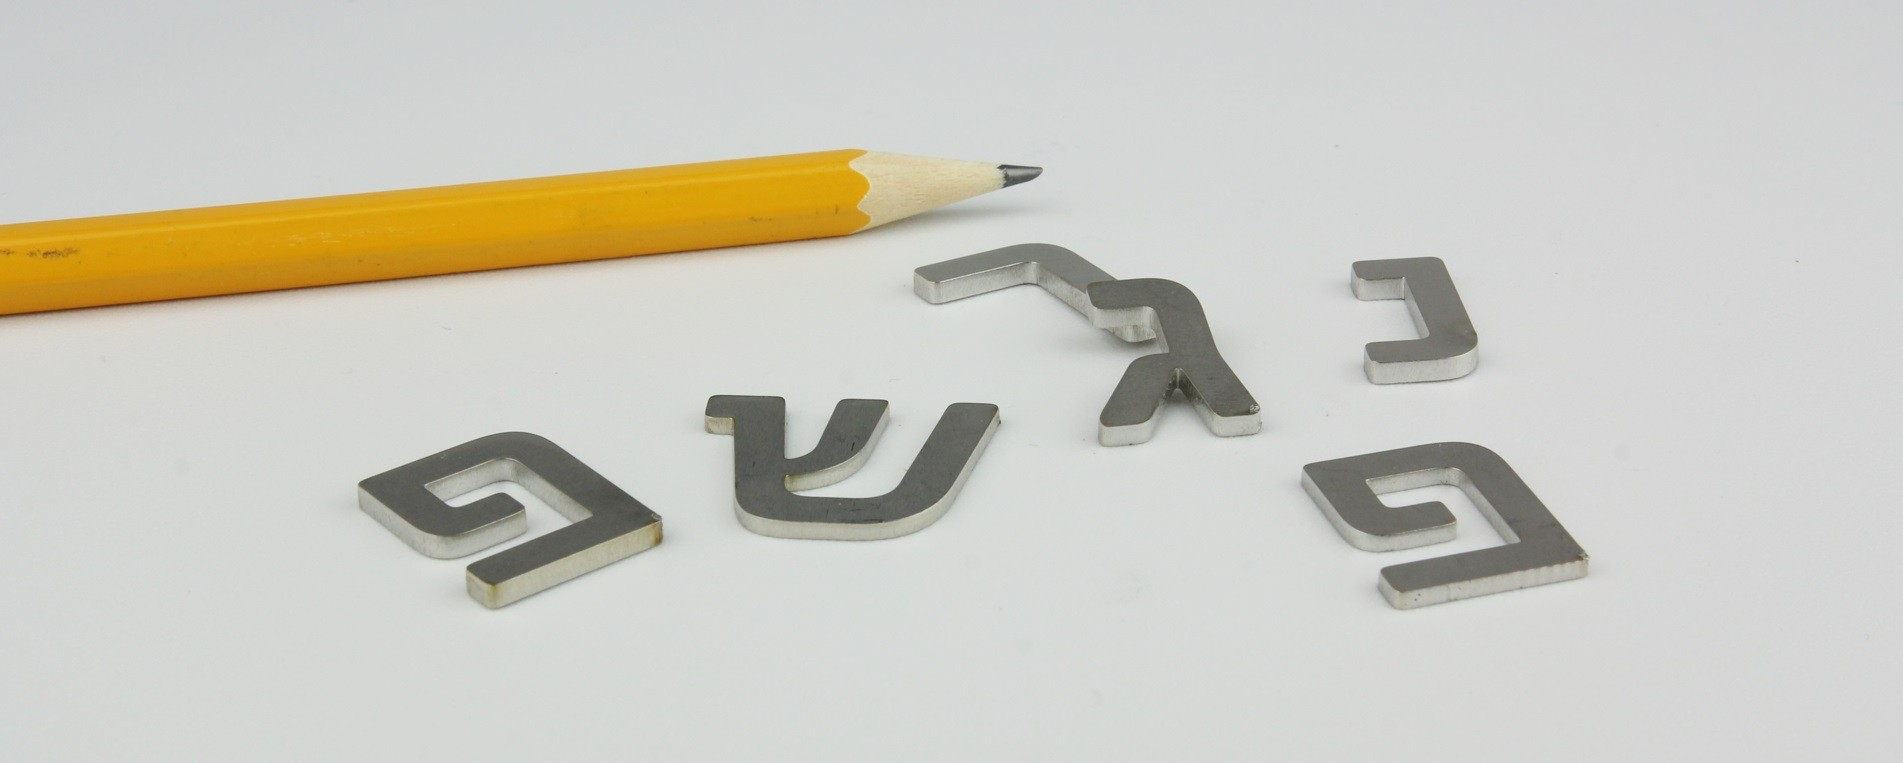 Laser cutting of 1.5mm stainless steel letters